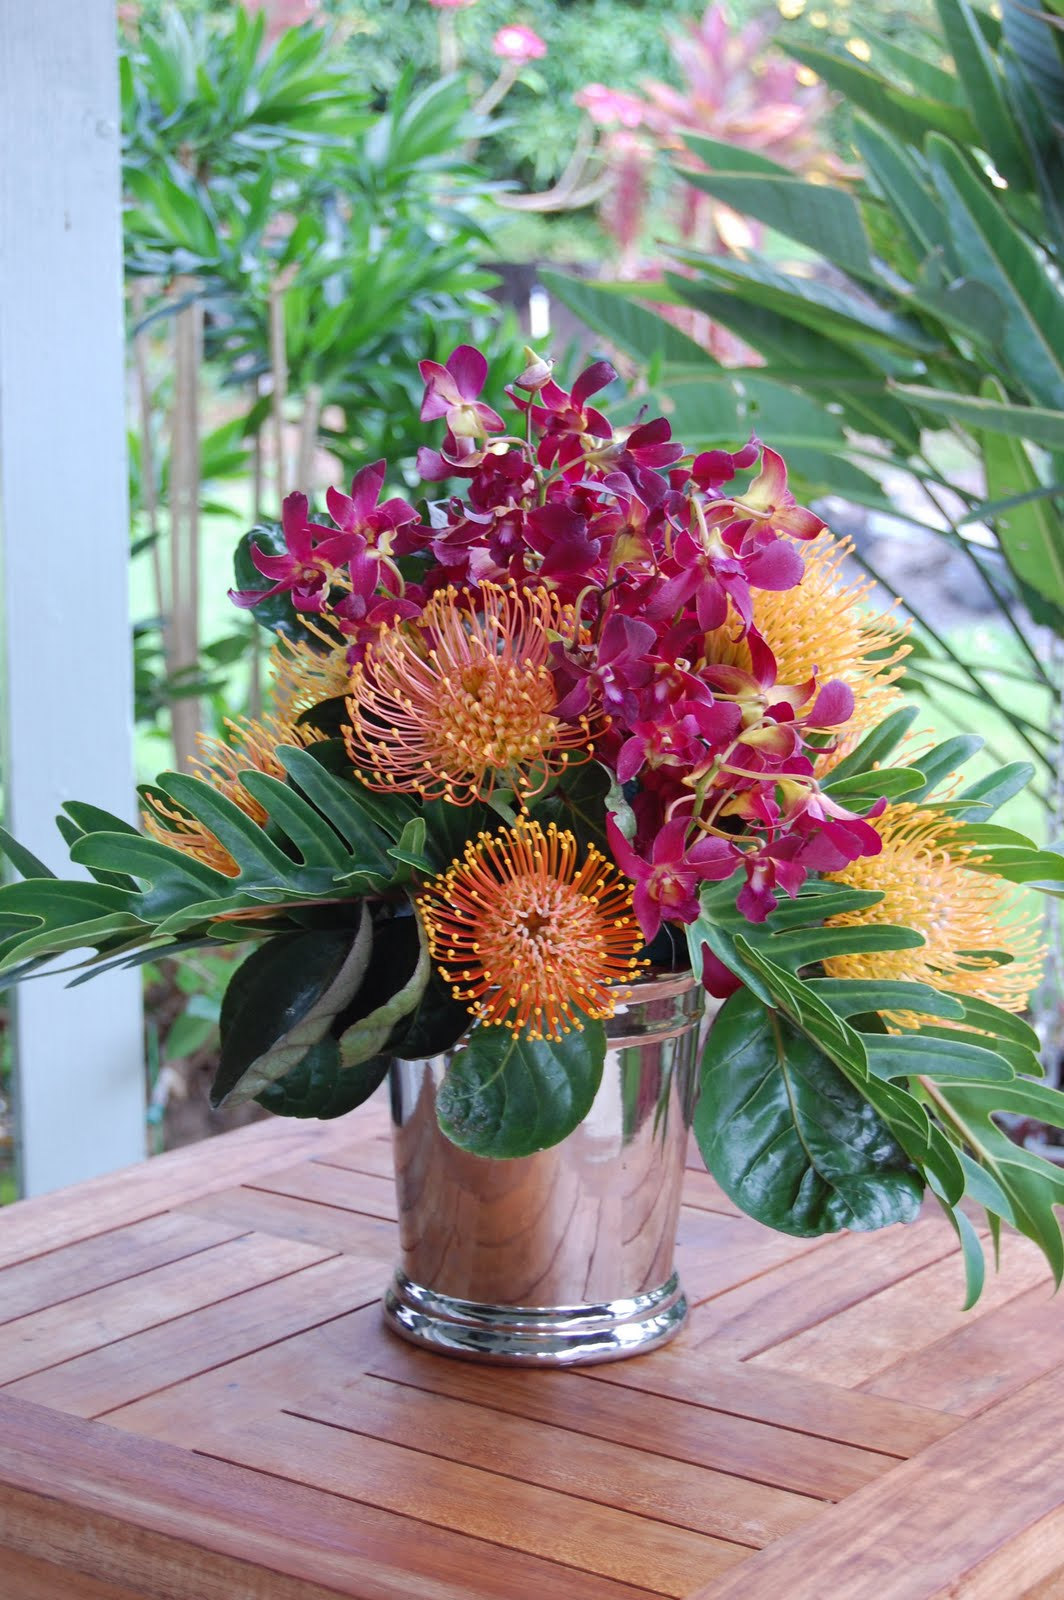 Arreglos florales tropicales on pinterest tropical for A arrangement florist flowers